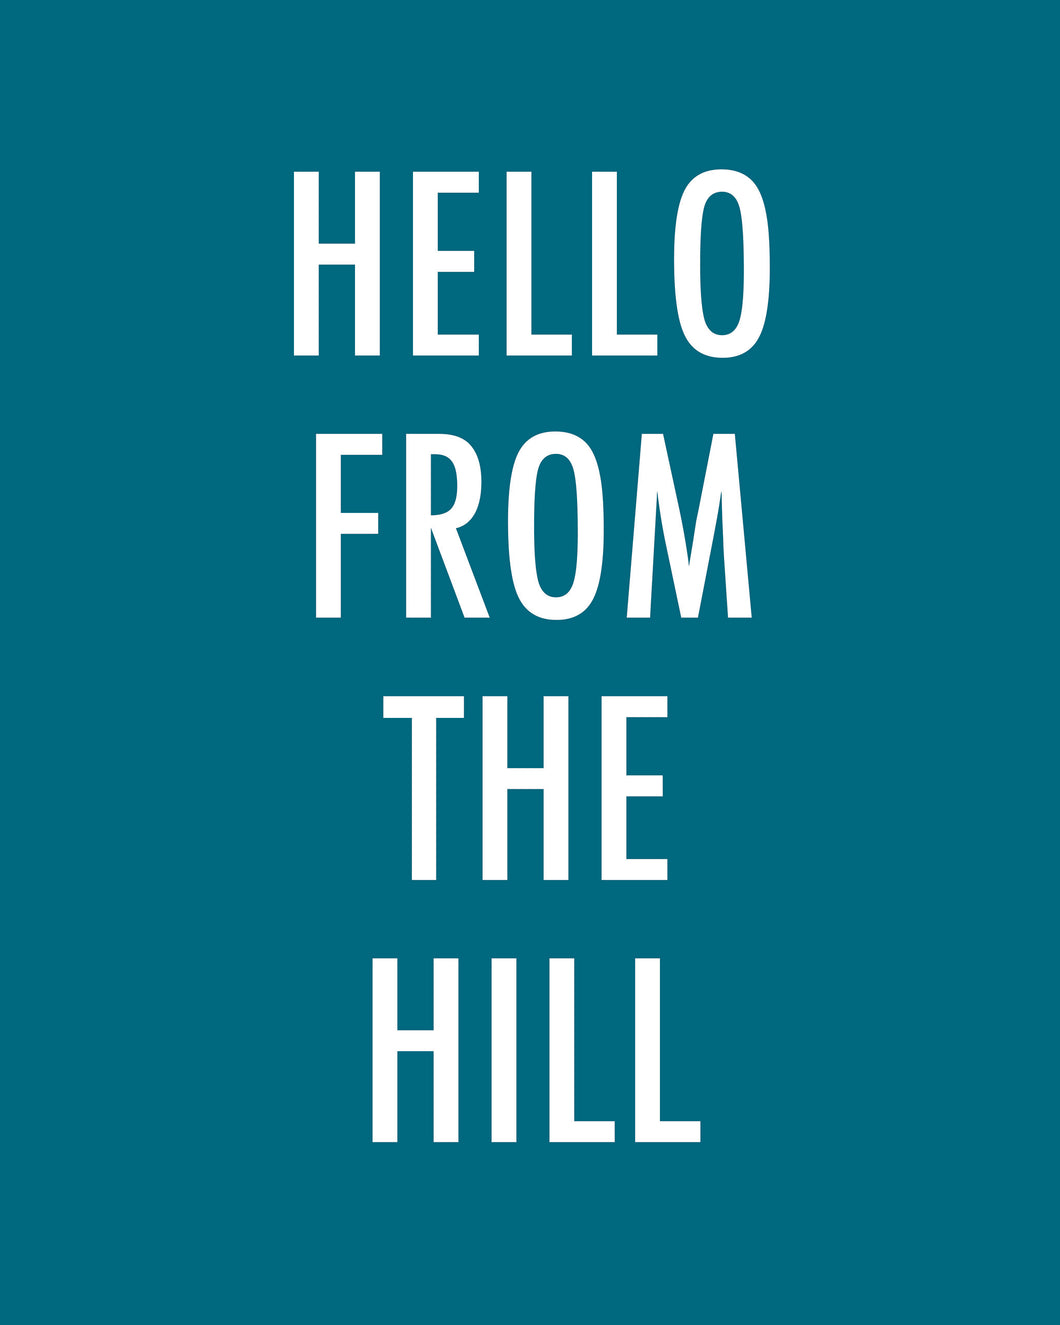 Hello From The Hill - Color Pop Print